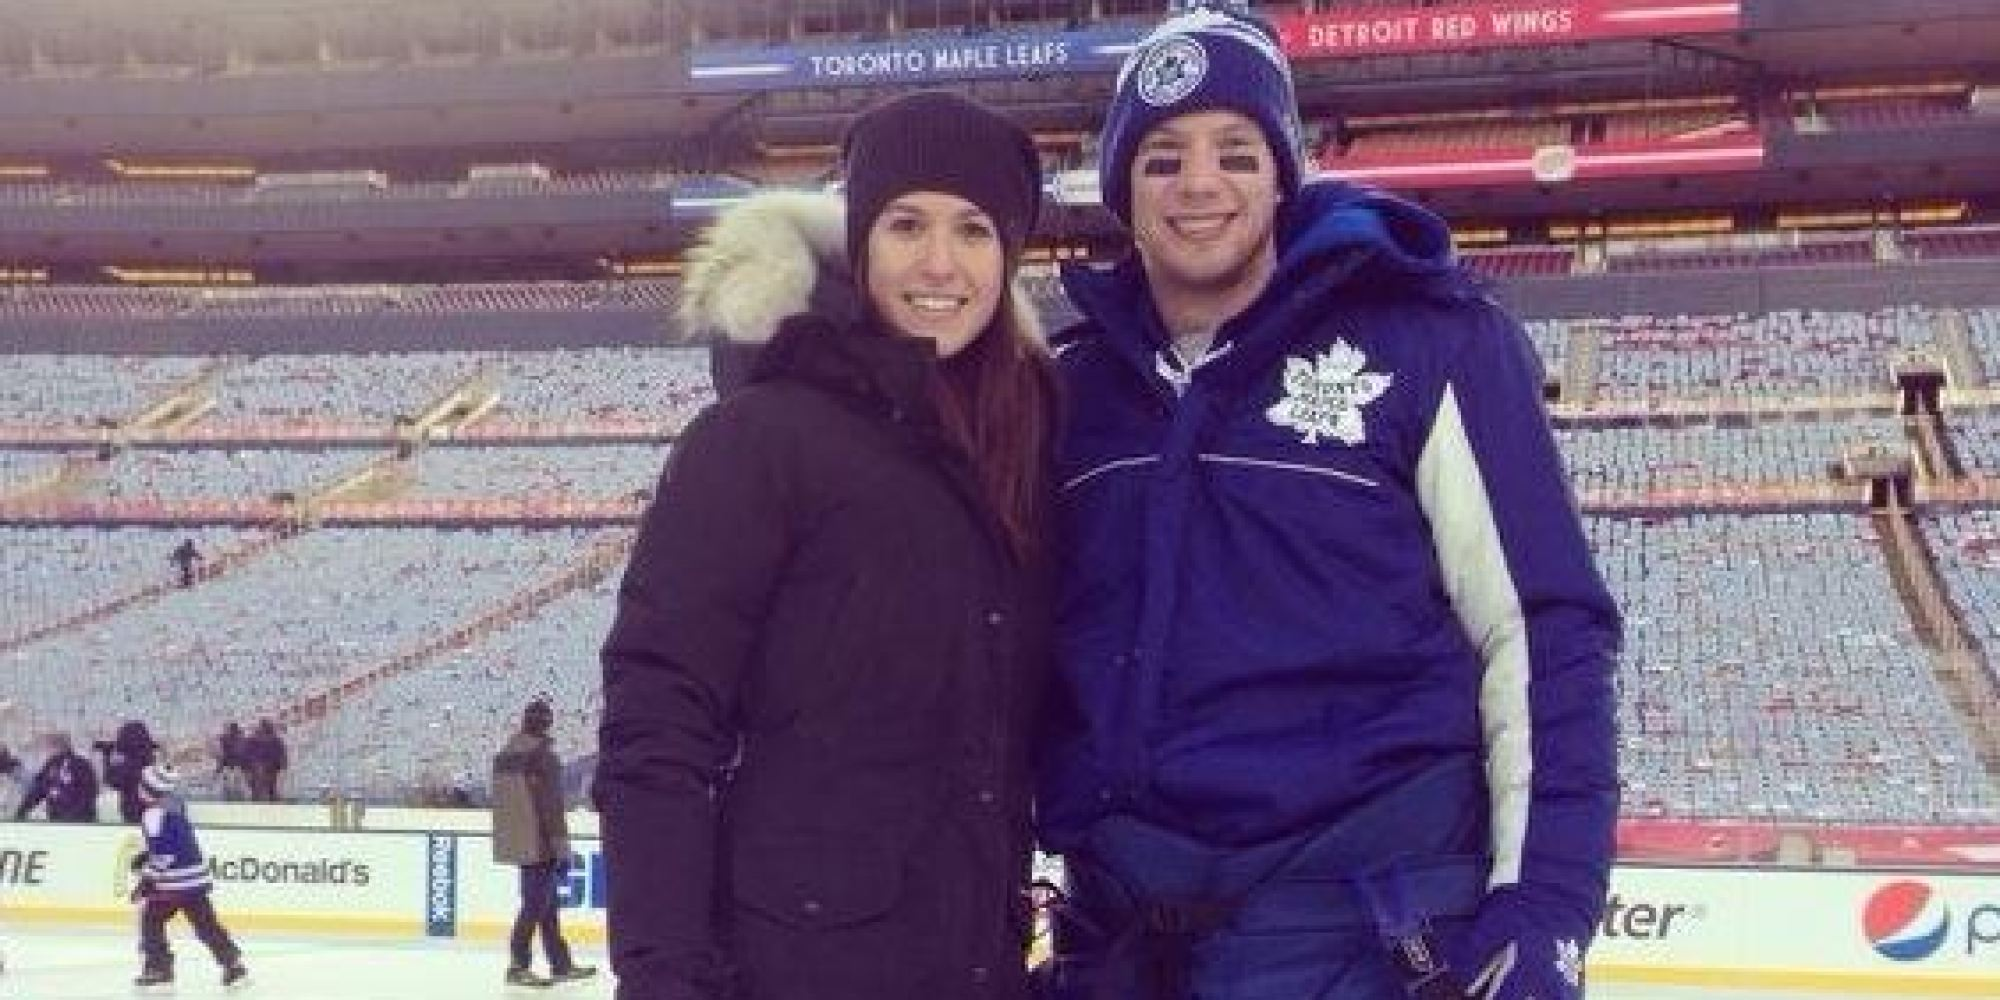 April Reimer Leafs Goalie S Wife Attacked On Twitter